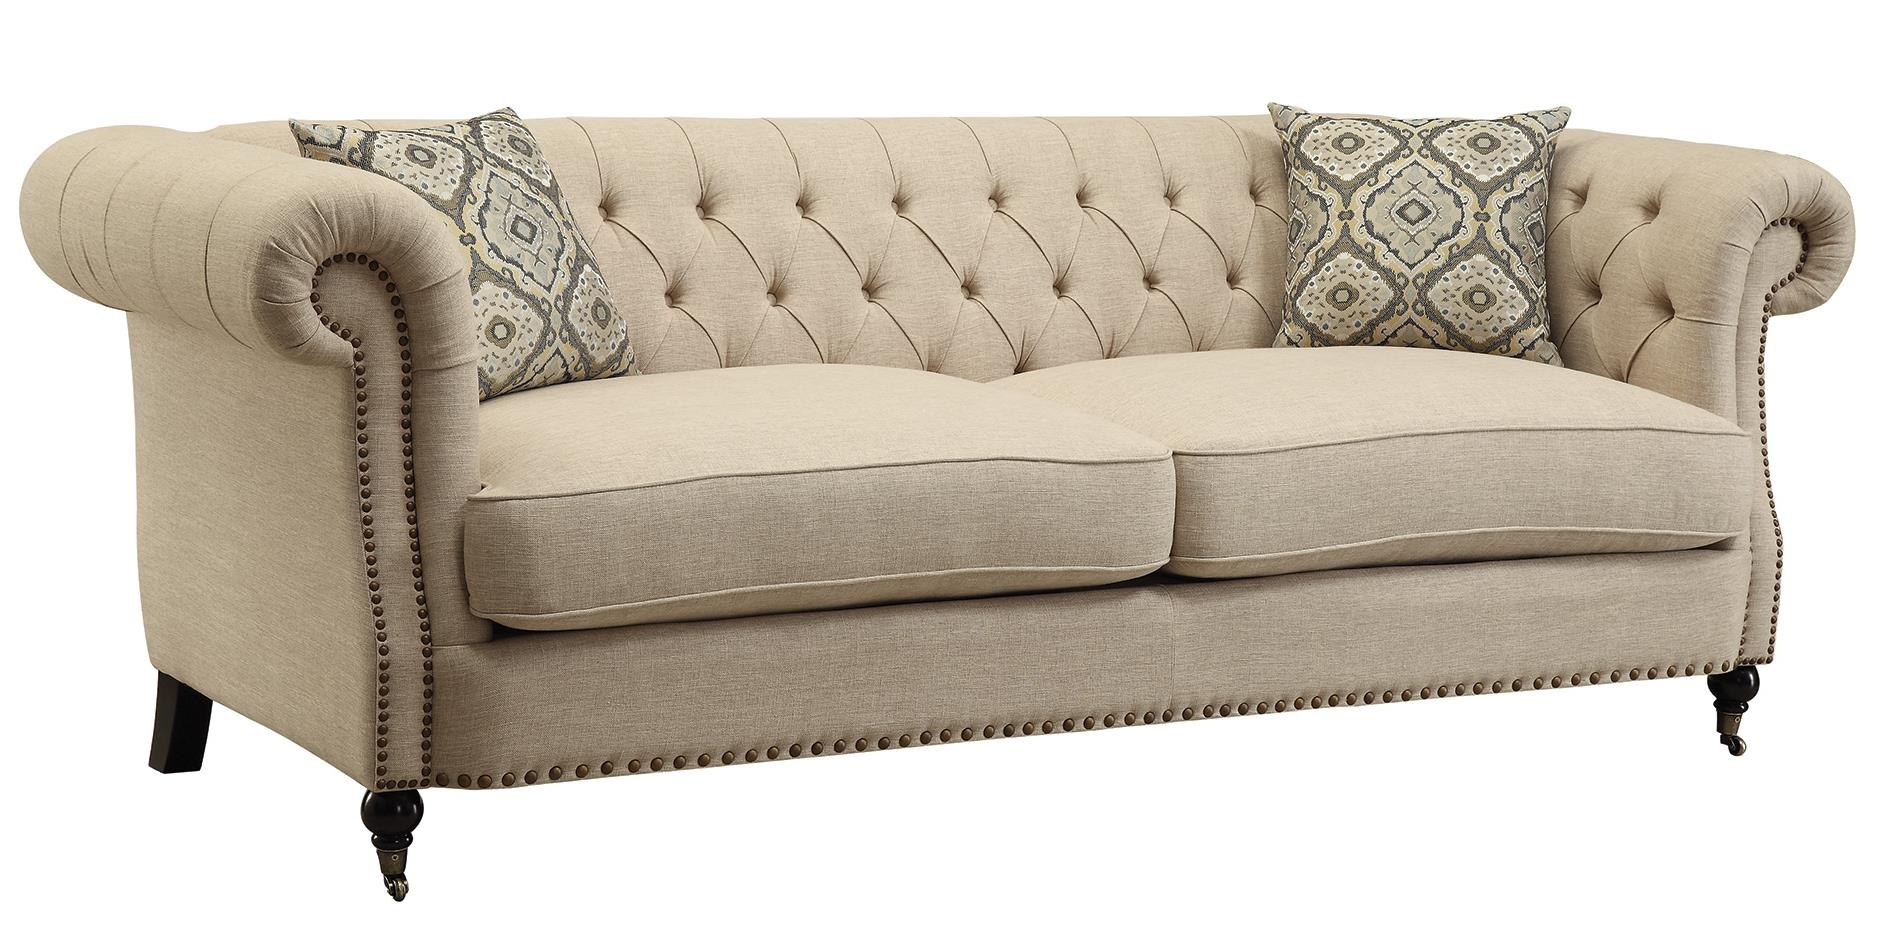 Coaster trivellato 505821 traditional button tufted sofa for Traditional sofas and loveseats